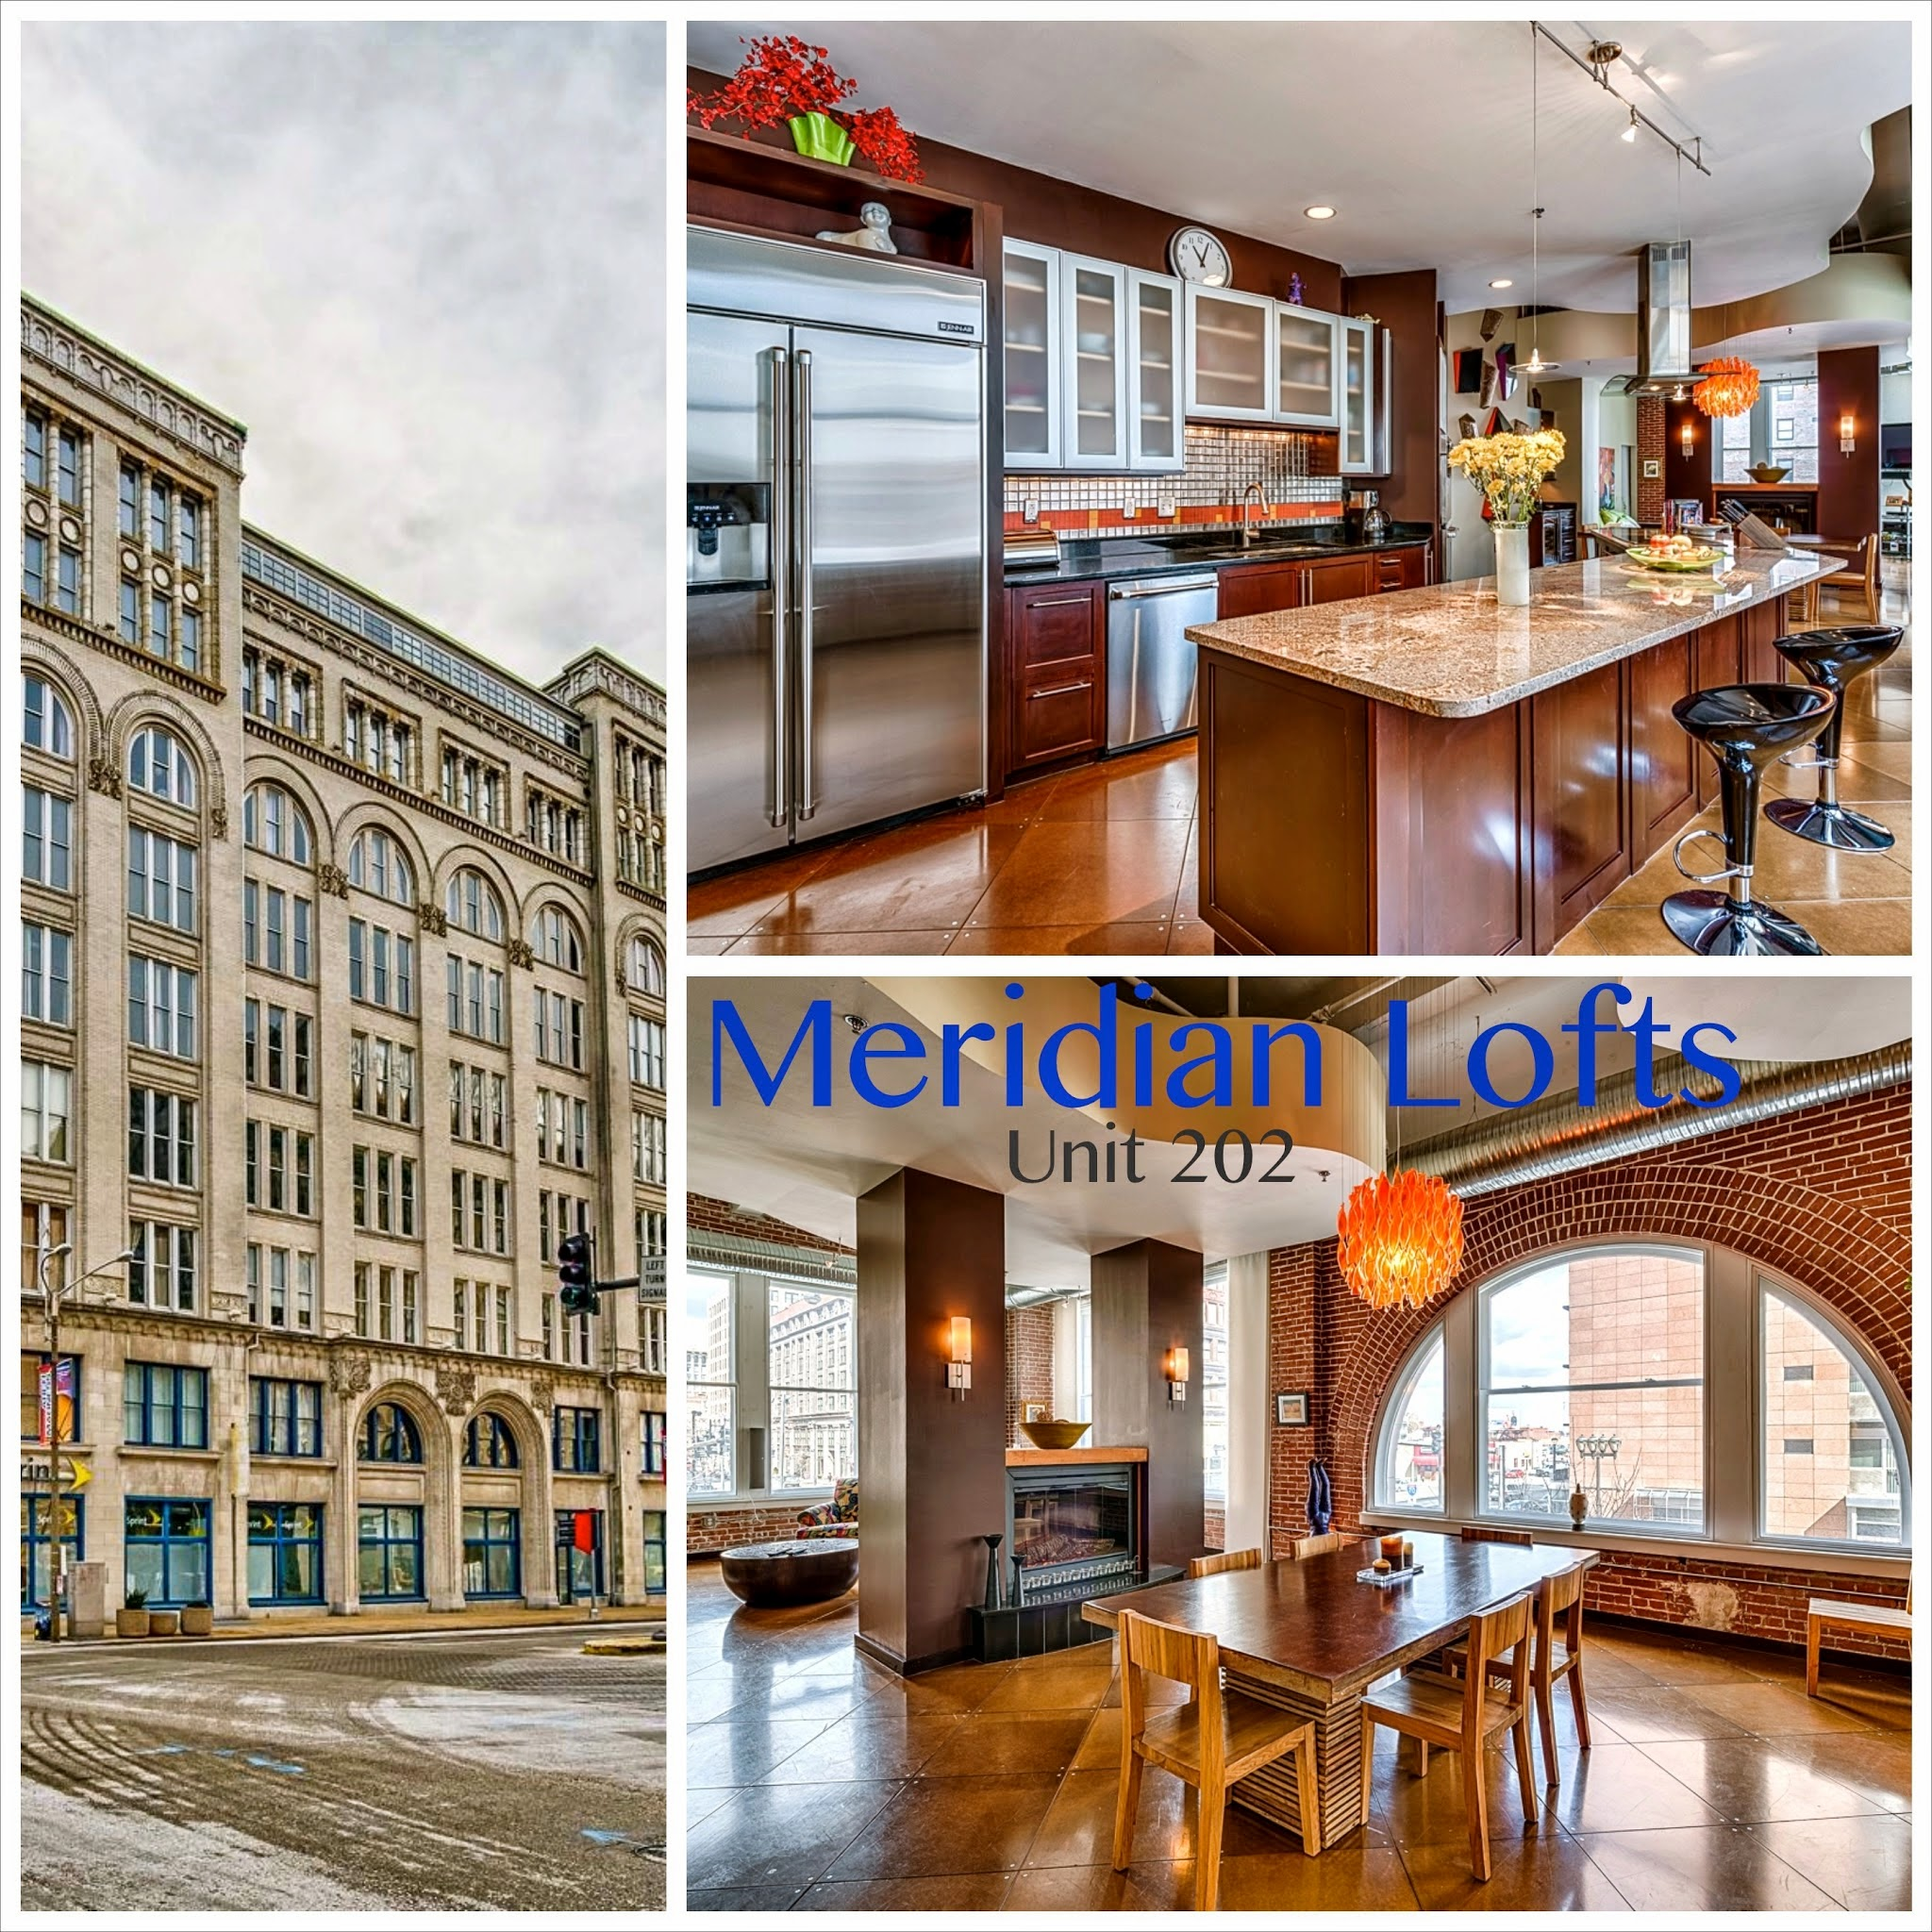 Meridian Lofts Extra Large, Extra Luxury